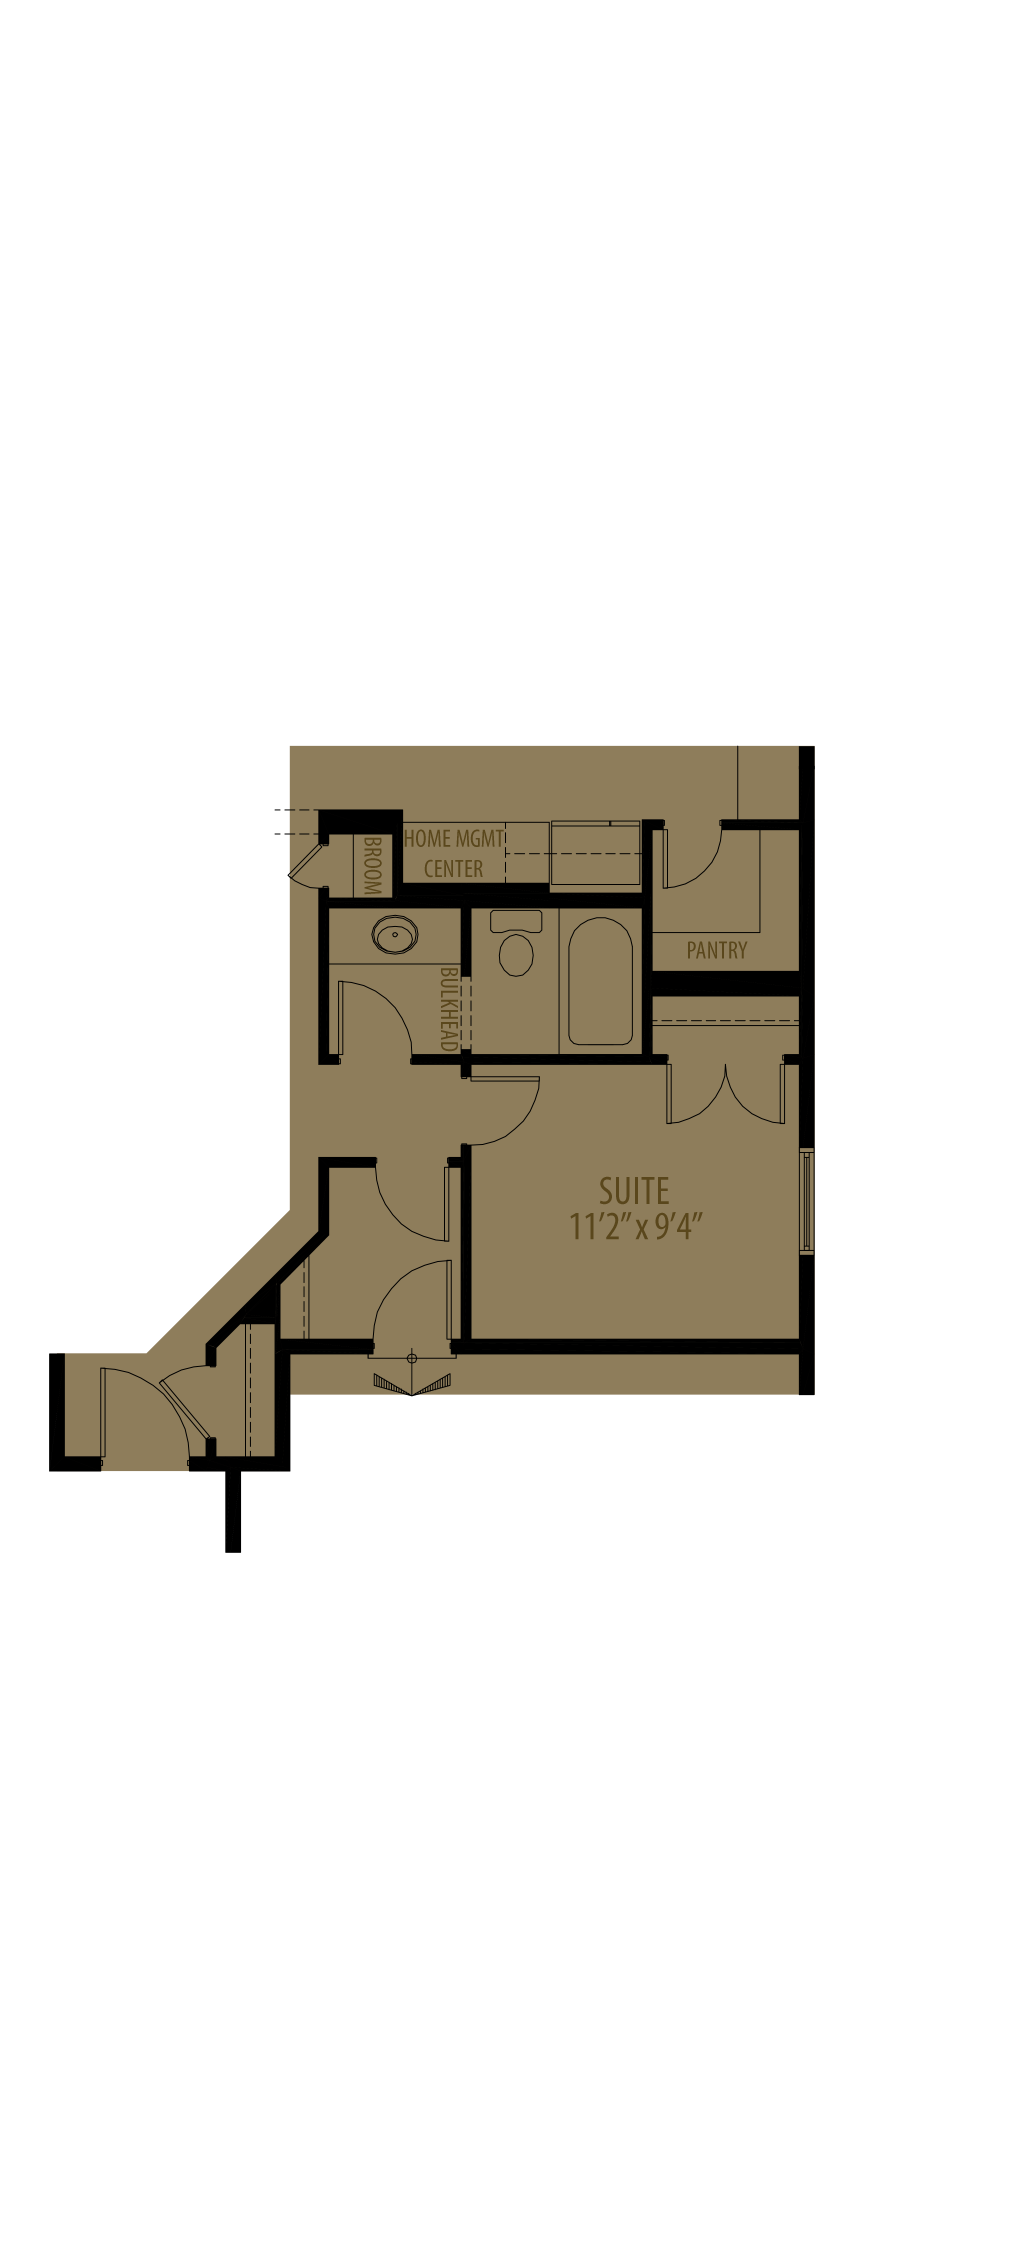 Main Floor Suite Adds 165 Sq Ft